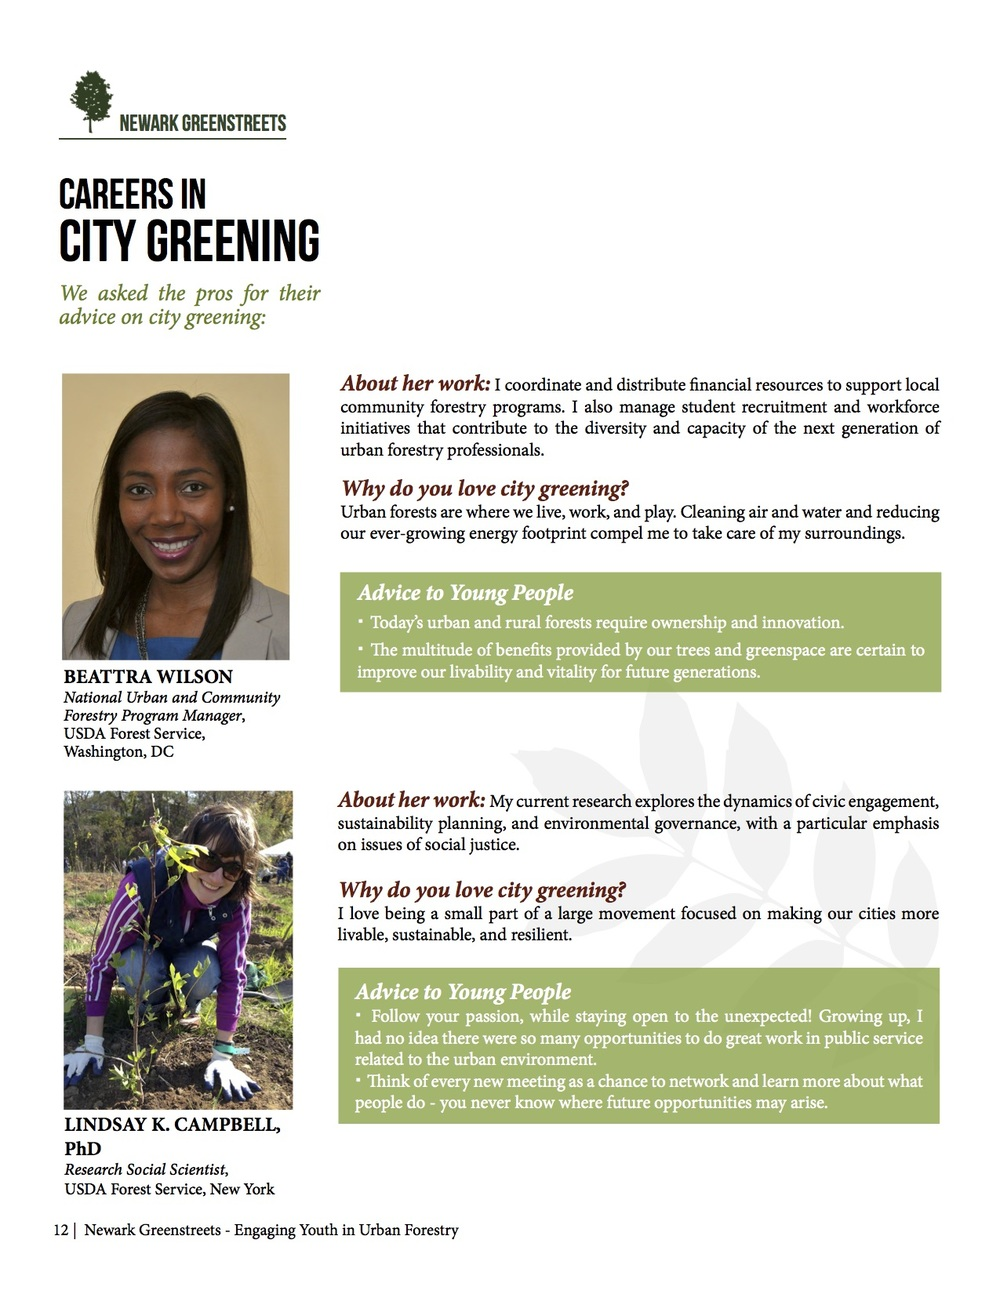 Grow Your Own_Newark Greenstreets-12.jpg